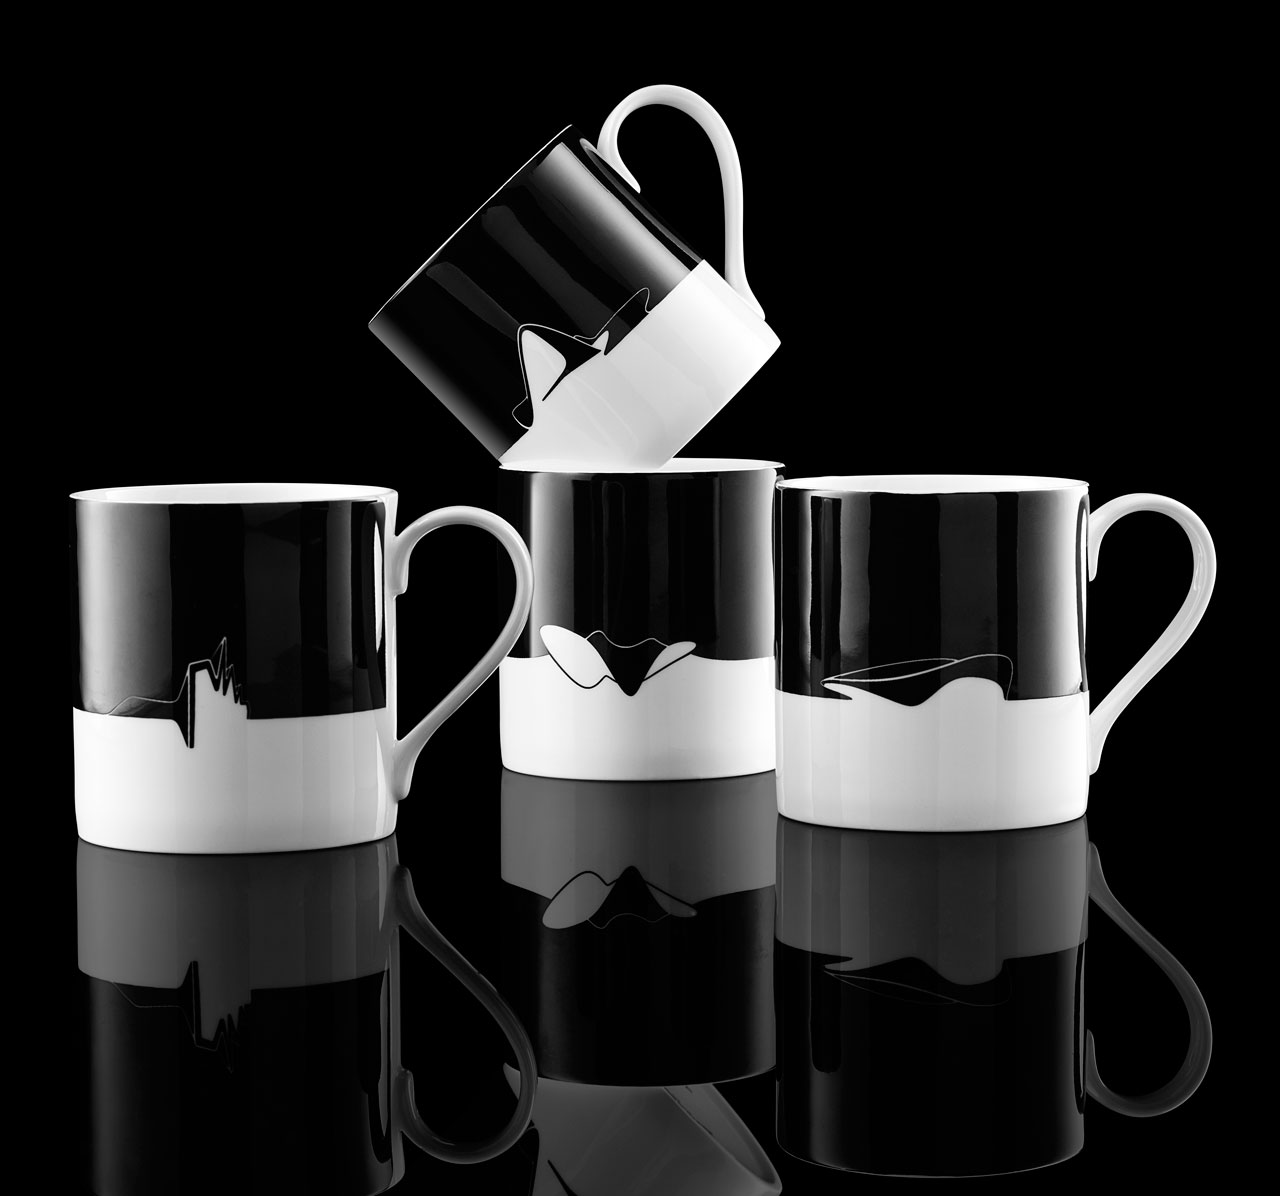 Icon Cups from the Zaha Hadid tableware collection 2016.